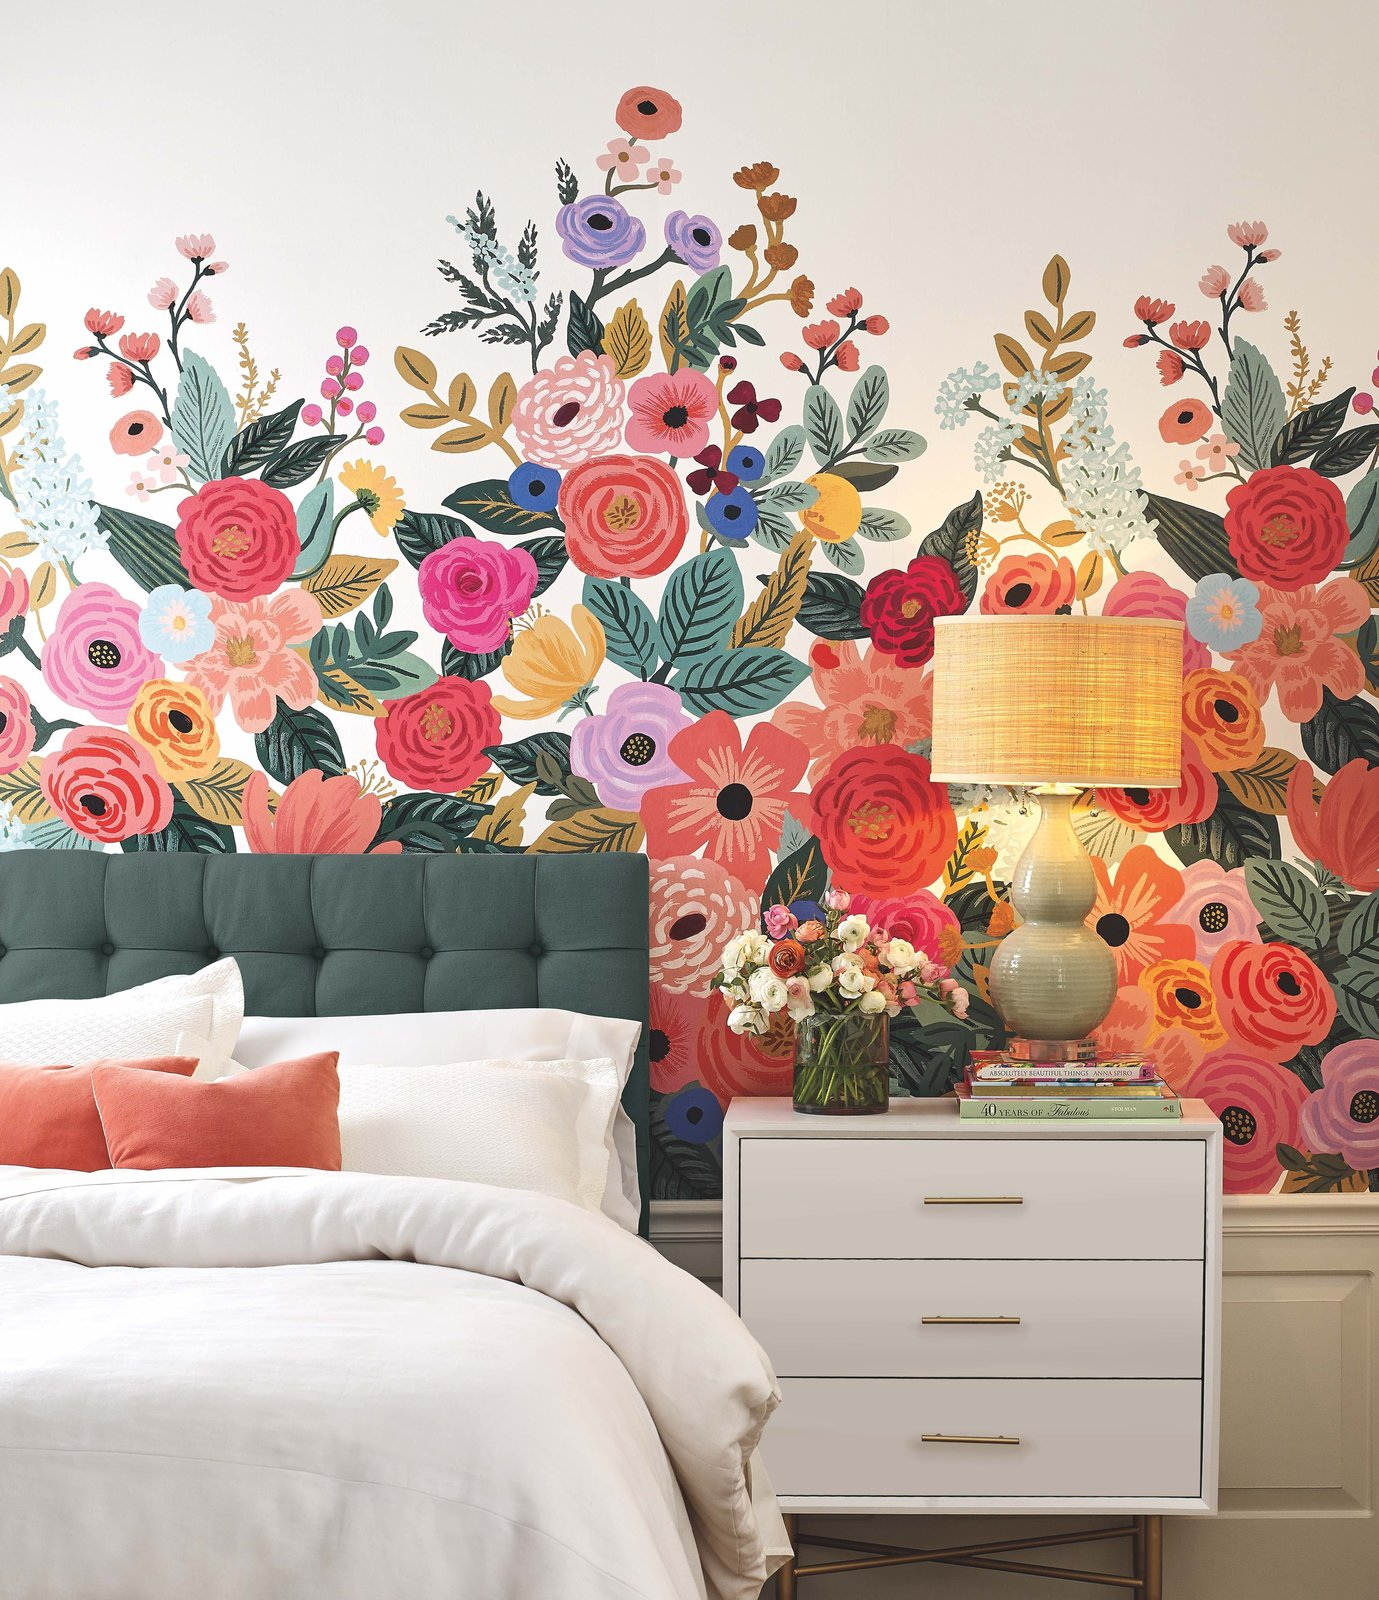 Photo 1 of 3 in Wallpaper Your Way to a Whimsical Home With Rifle Paper Co.'s New Offerings